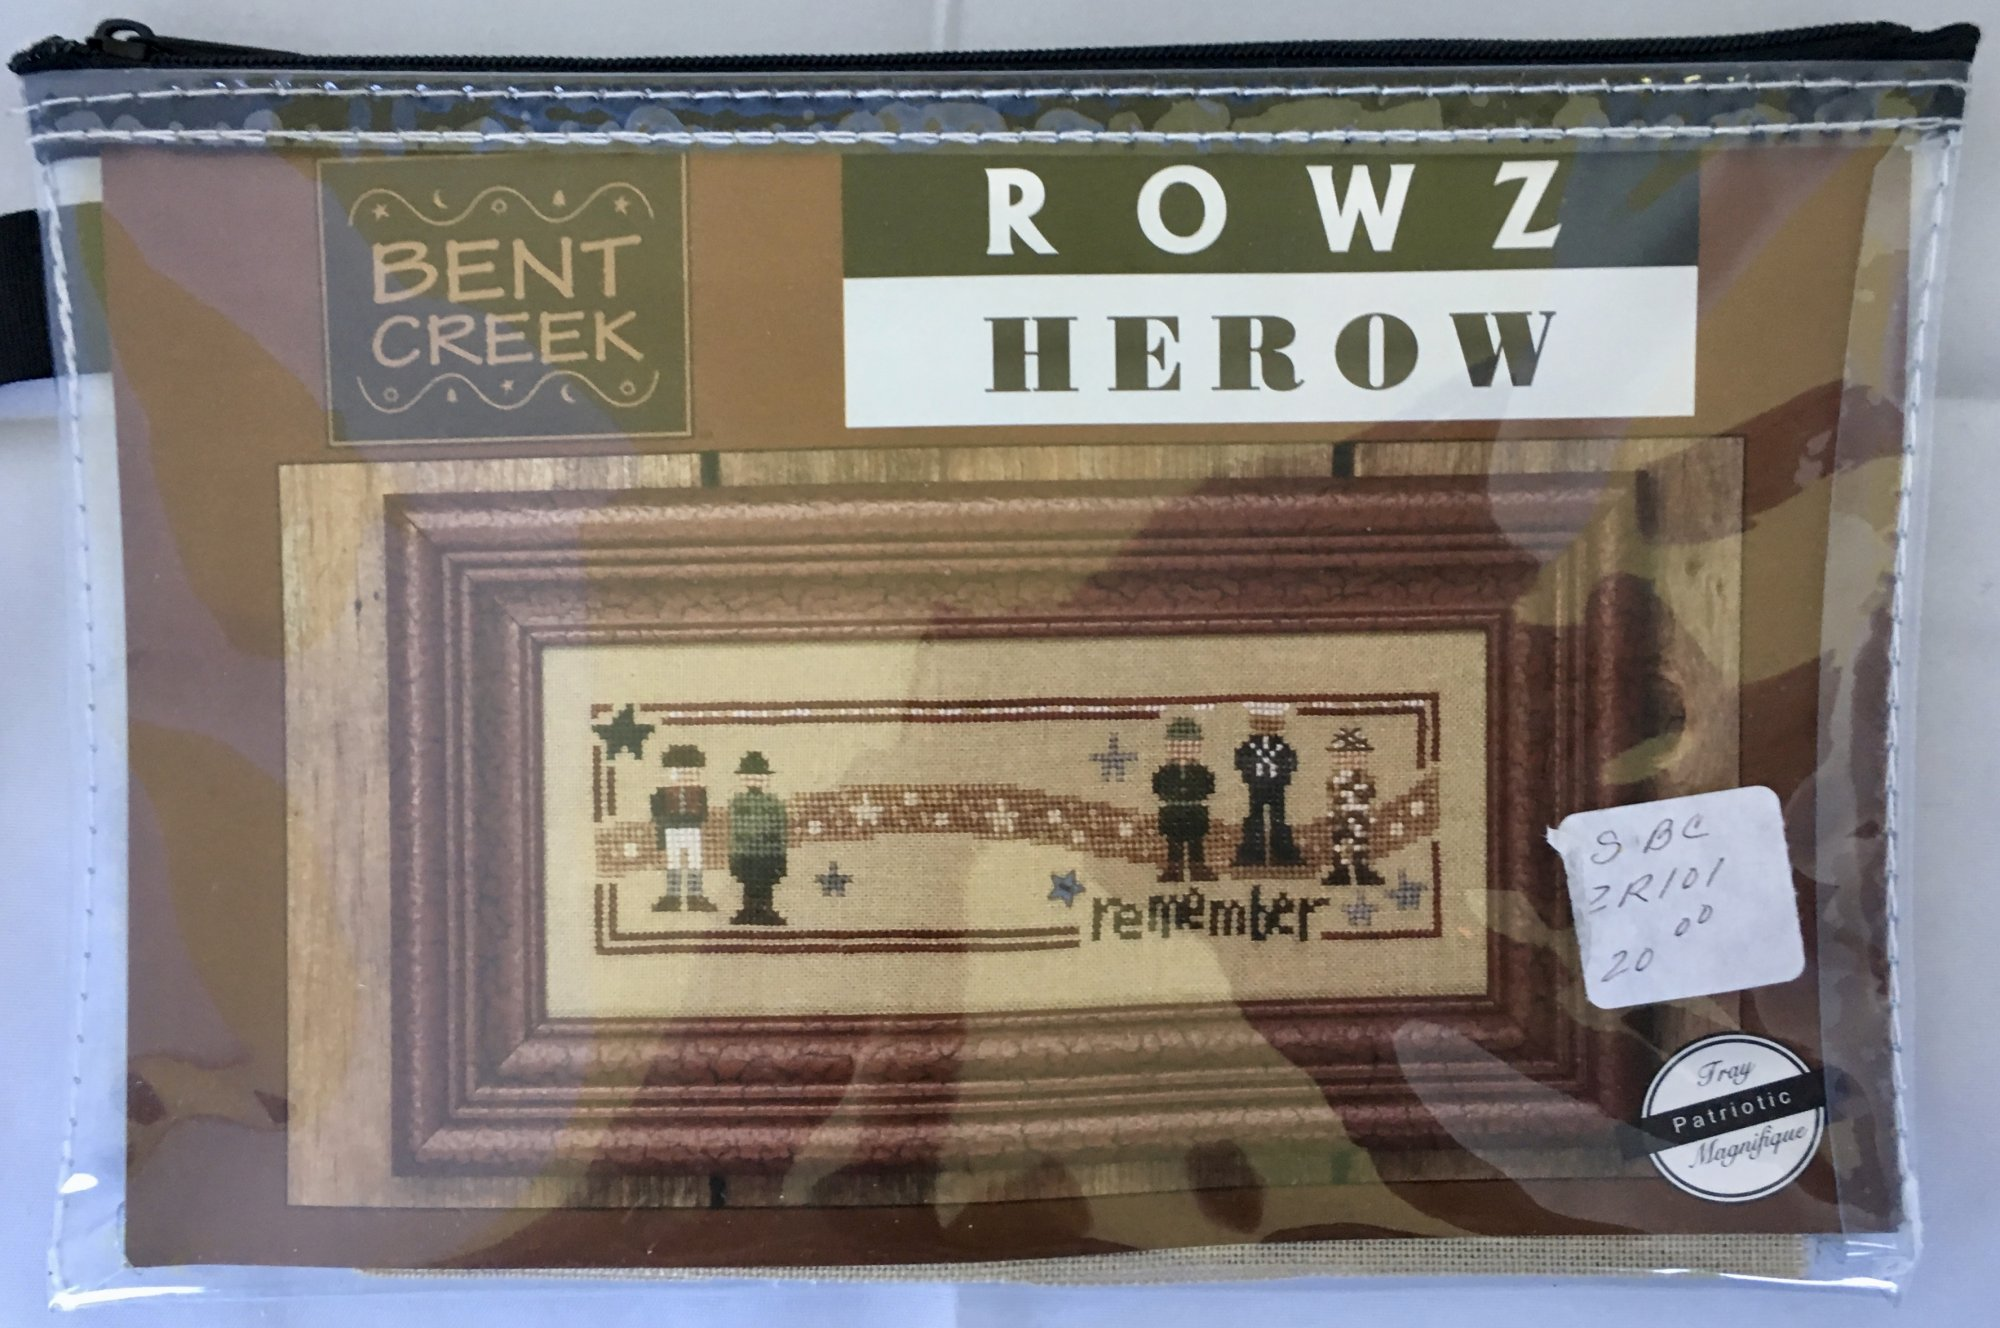 Bent Creek: Rowz Herow Kit